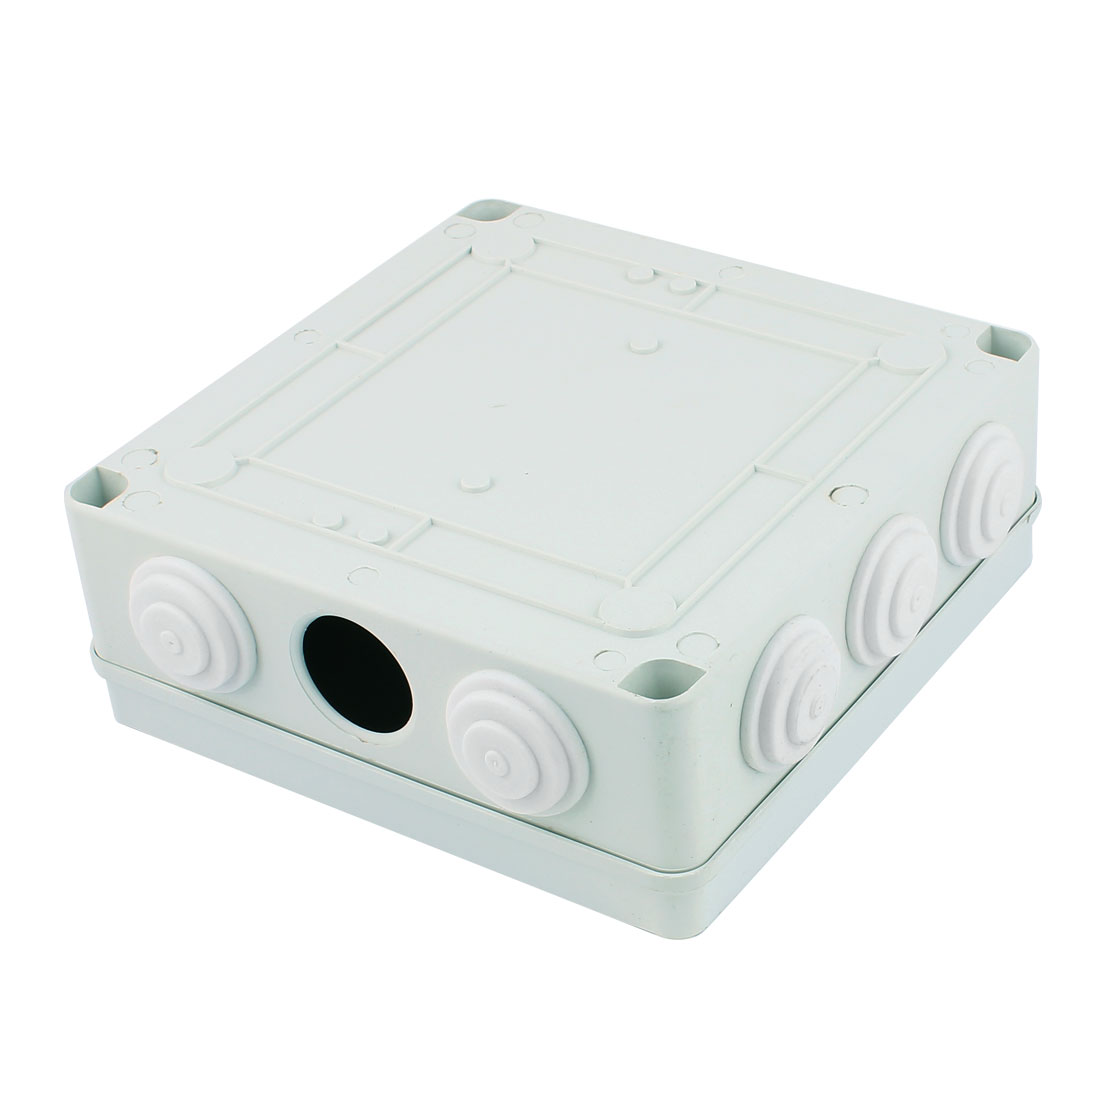 White ABS Dustproof IP65 Enclosure Square Junction Box 200x200x80mm